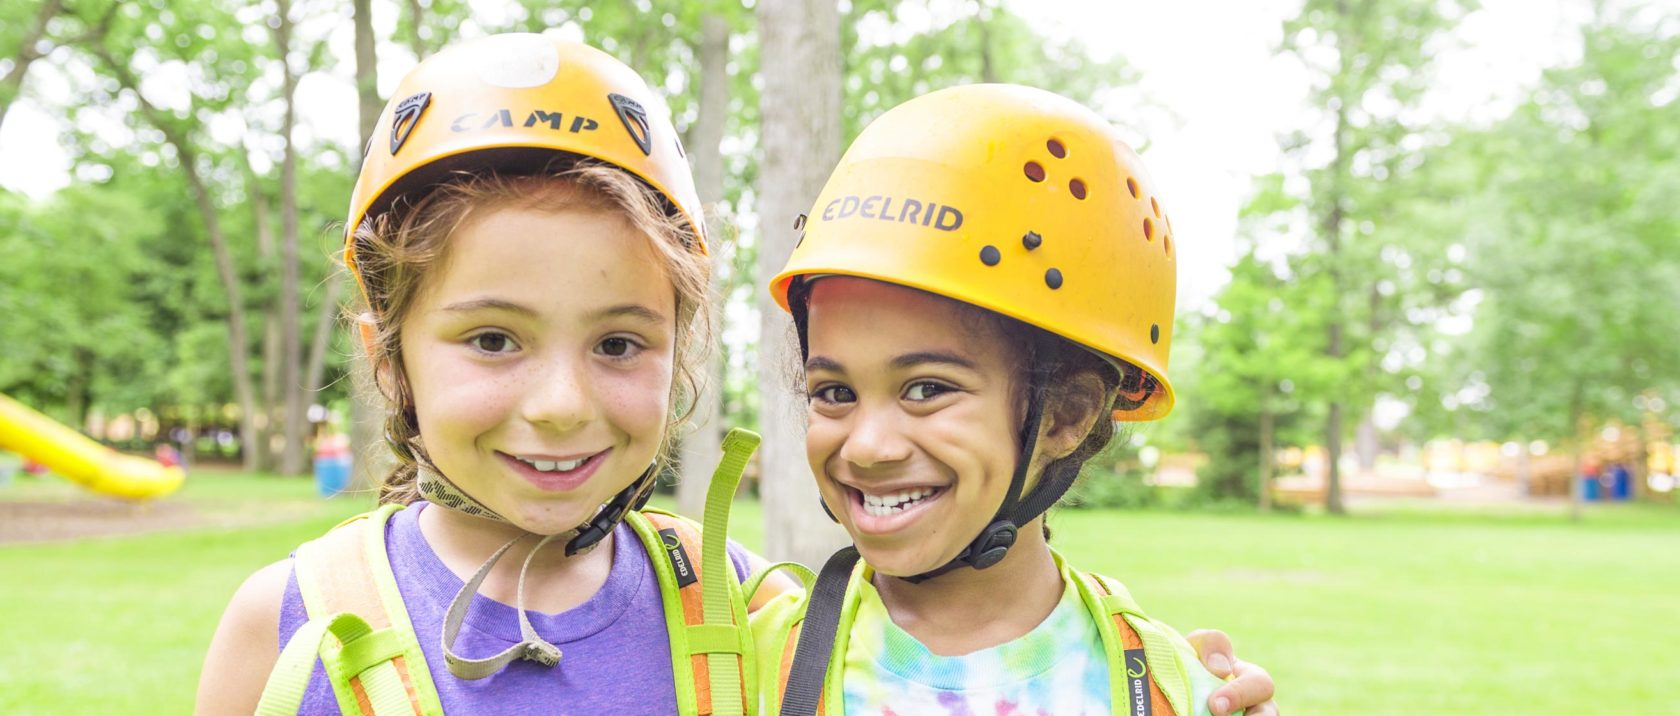 Two girl campers with zipline gear on smiling together